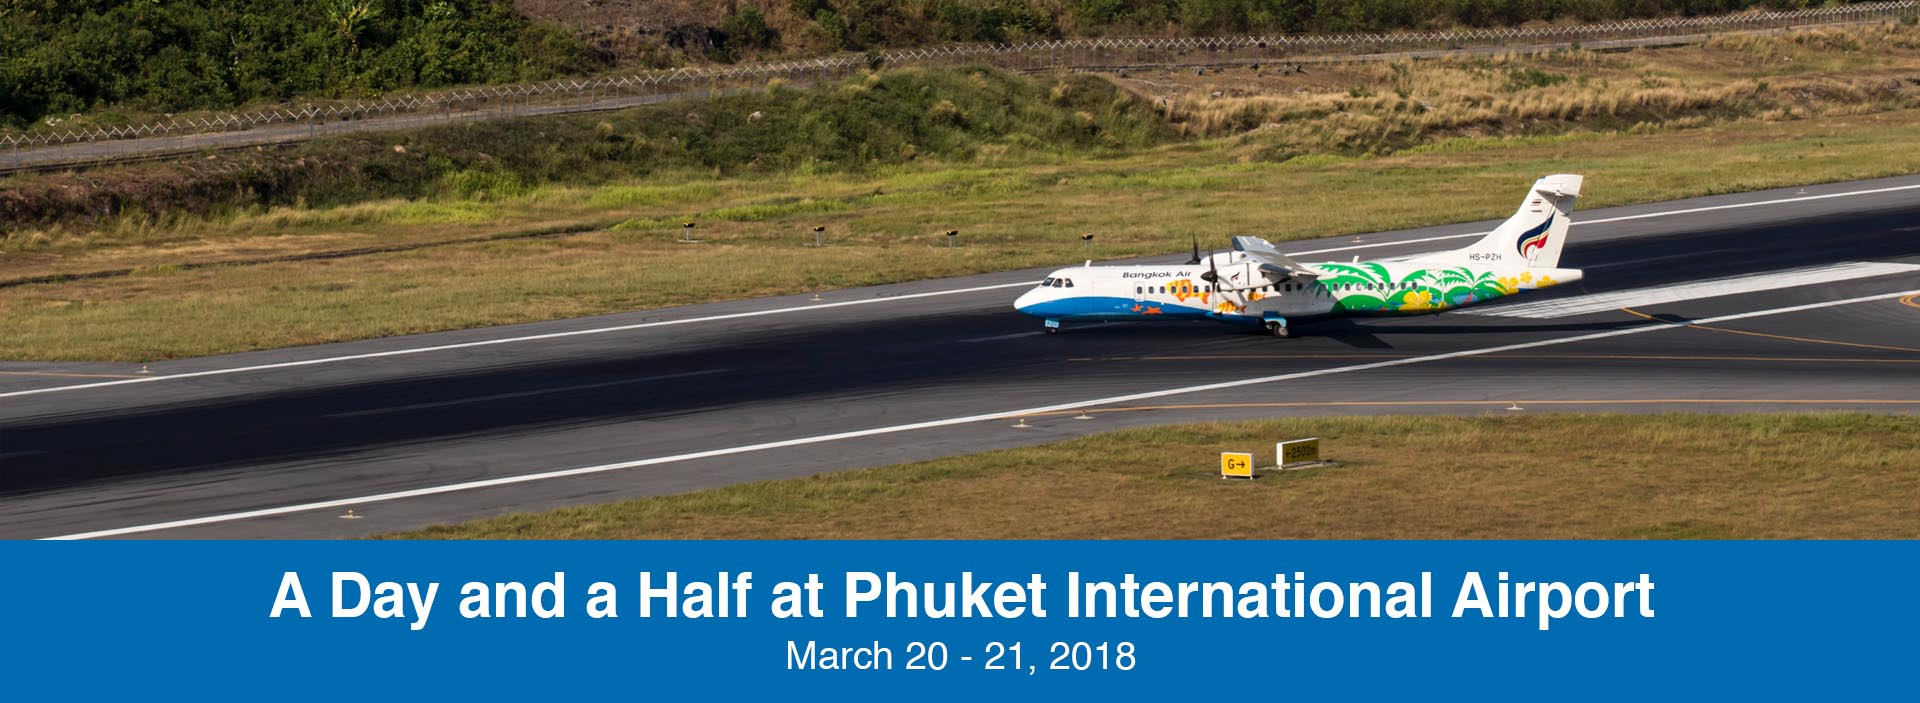 Spotting Report: A Day and a Half at Phuket International Airport